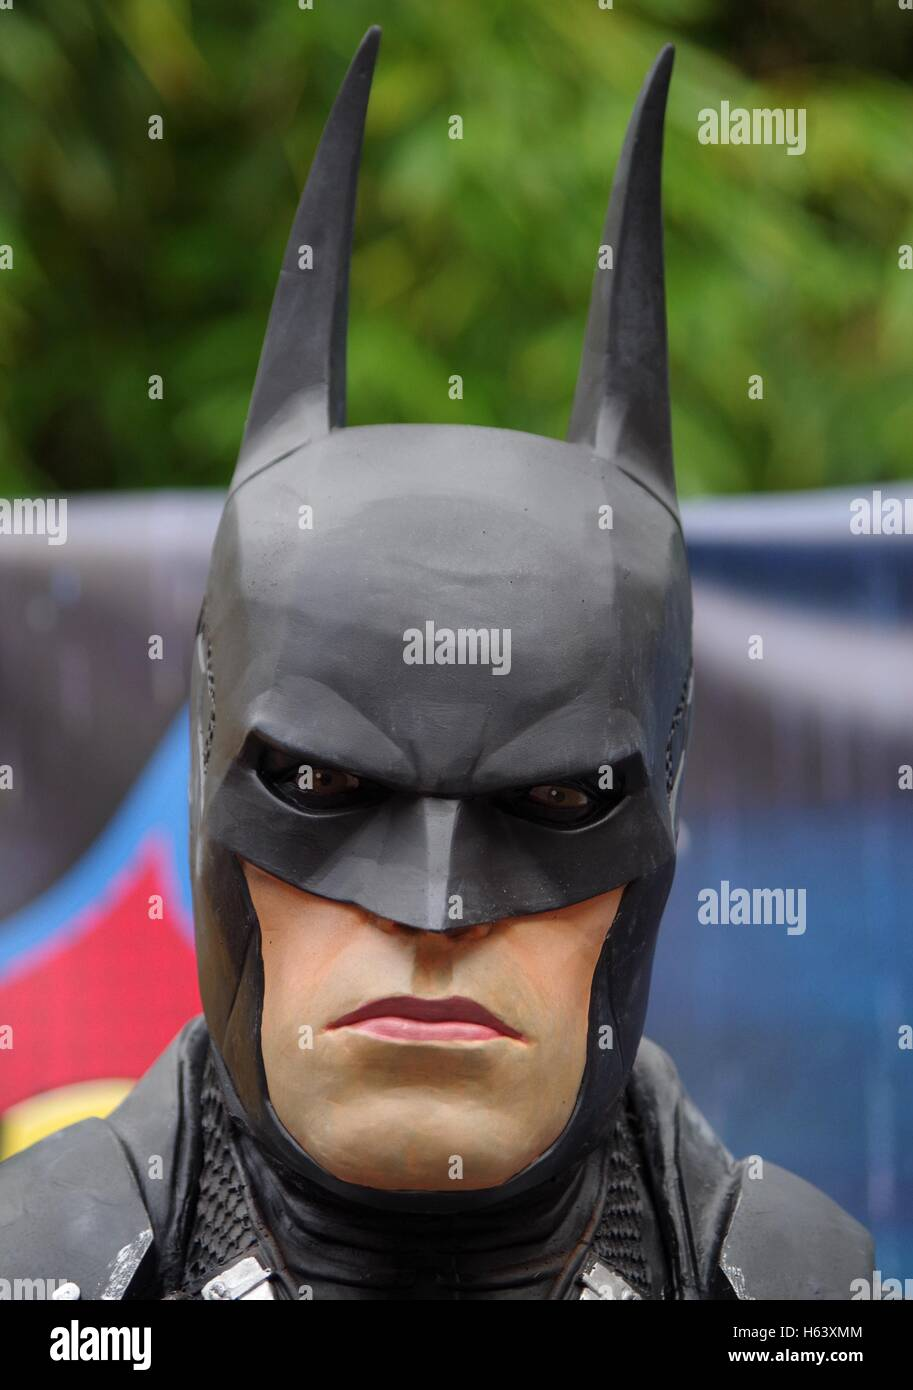 batman figure costume full size realistic - Stock Image